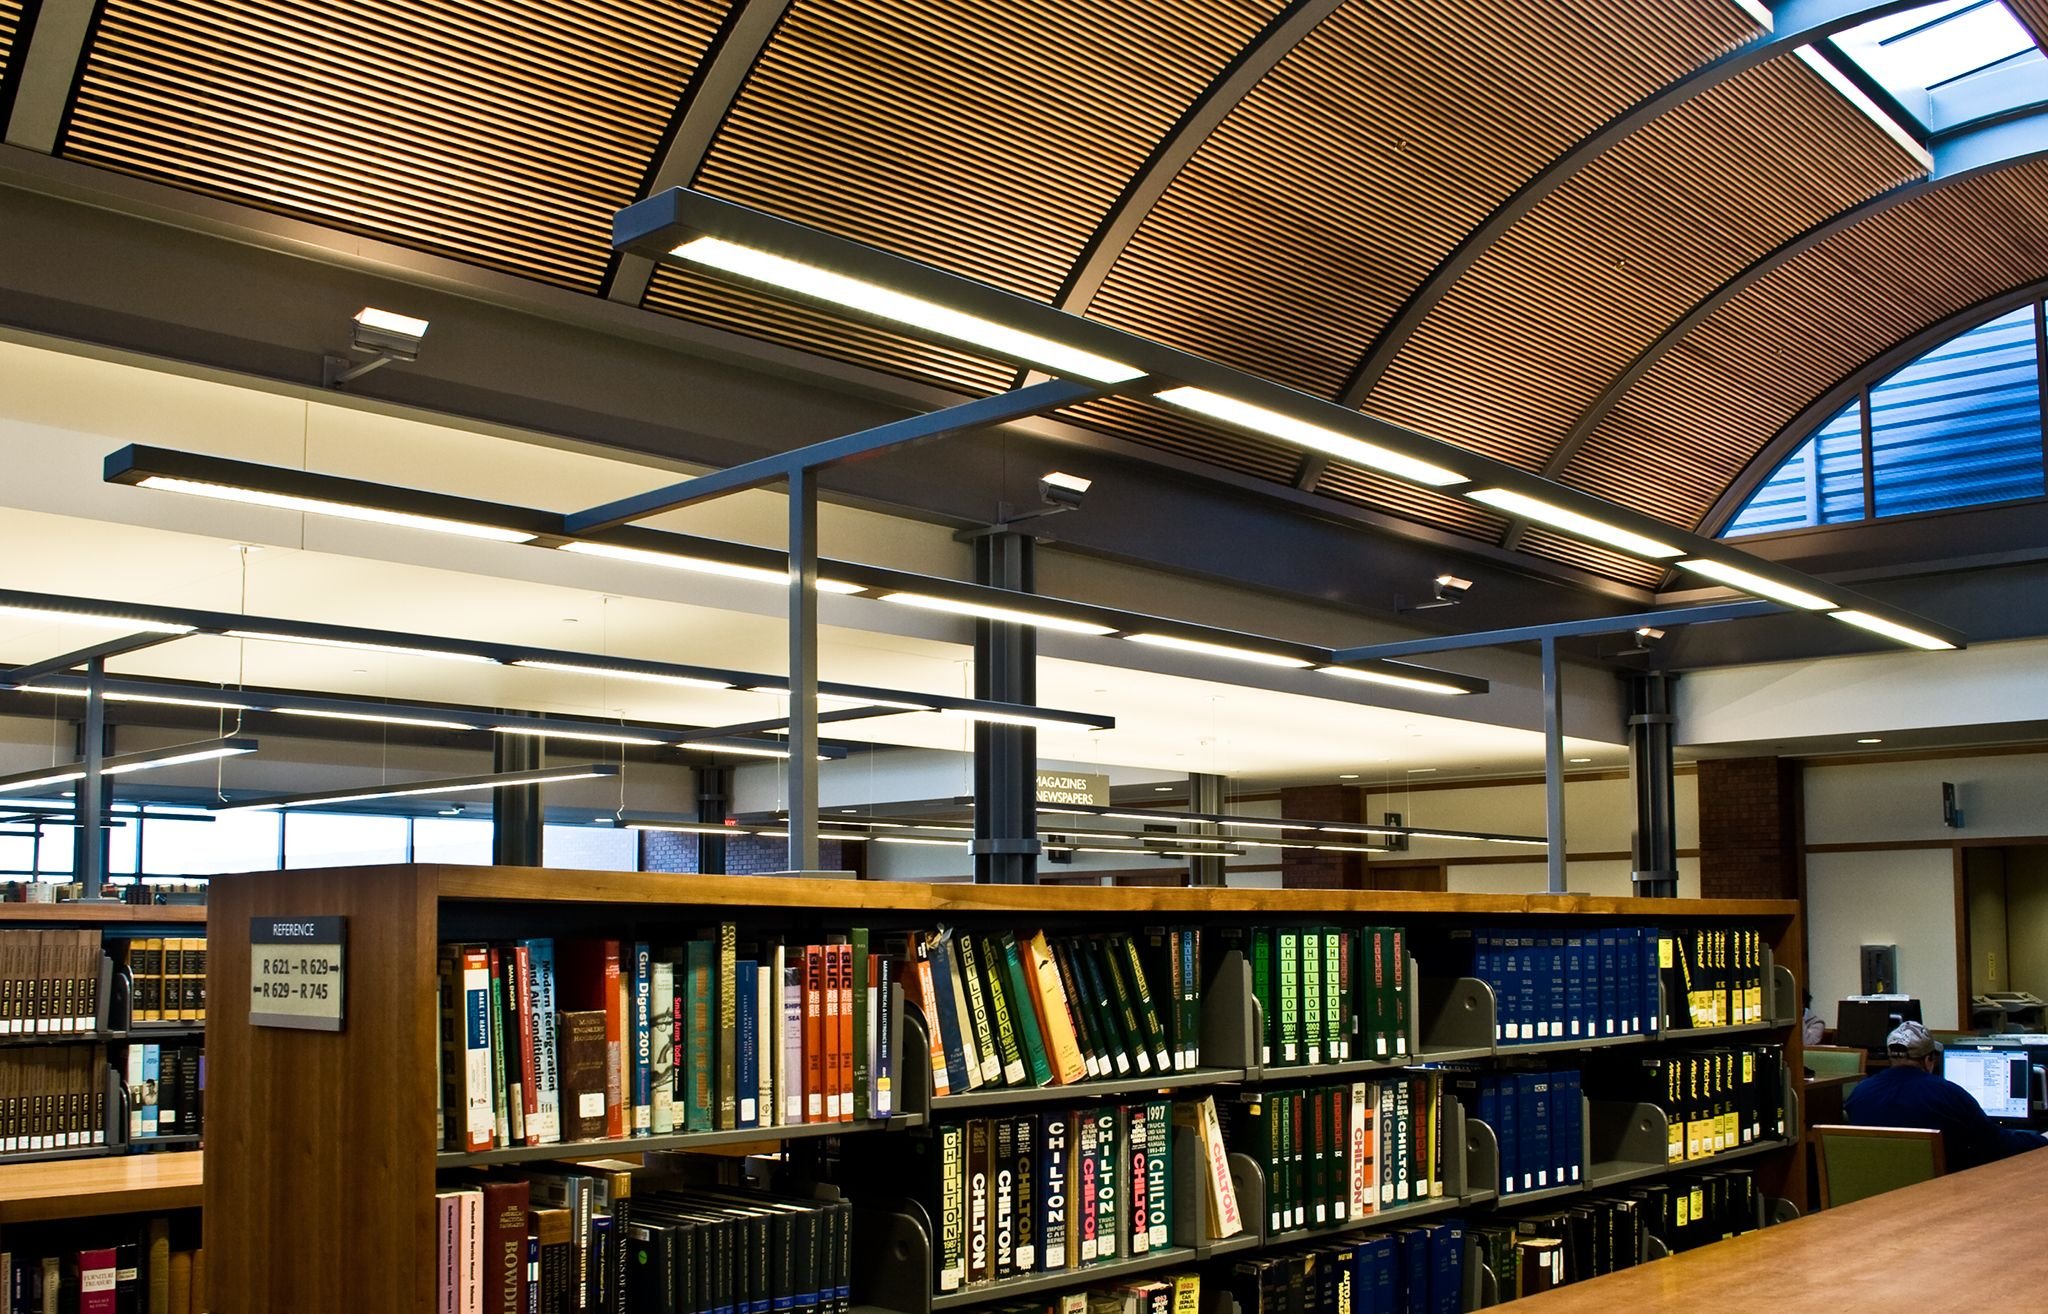 Library lighting design lighting design · libraries library